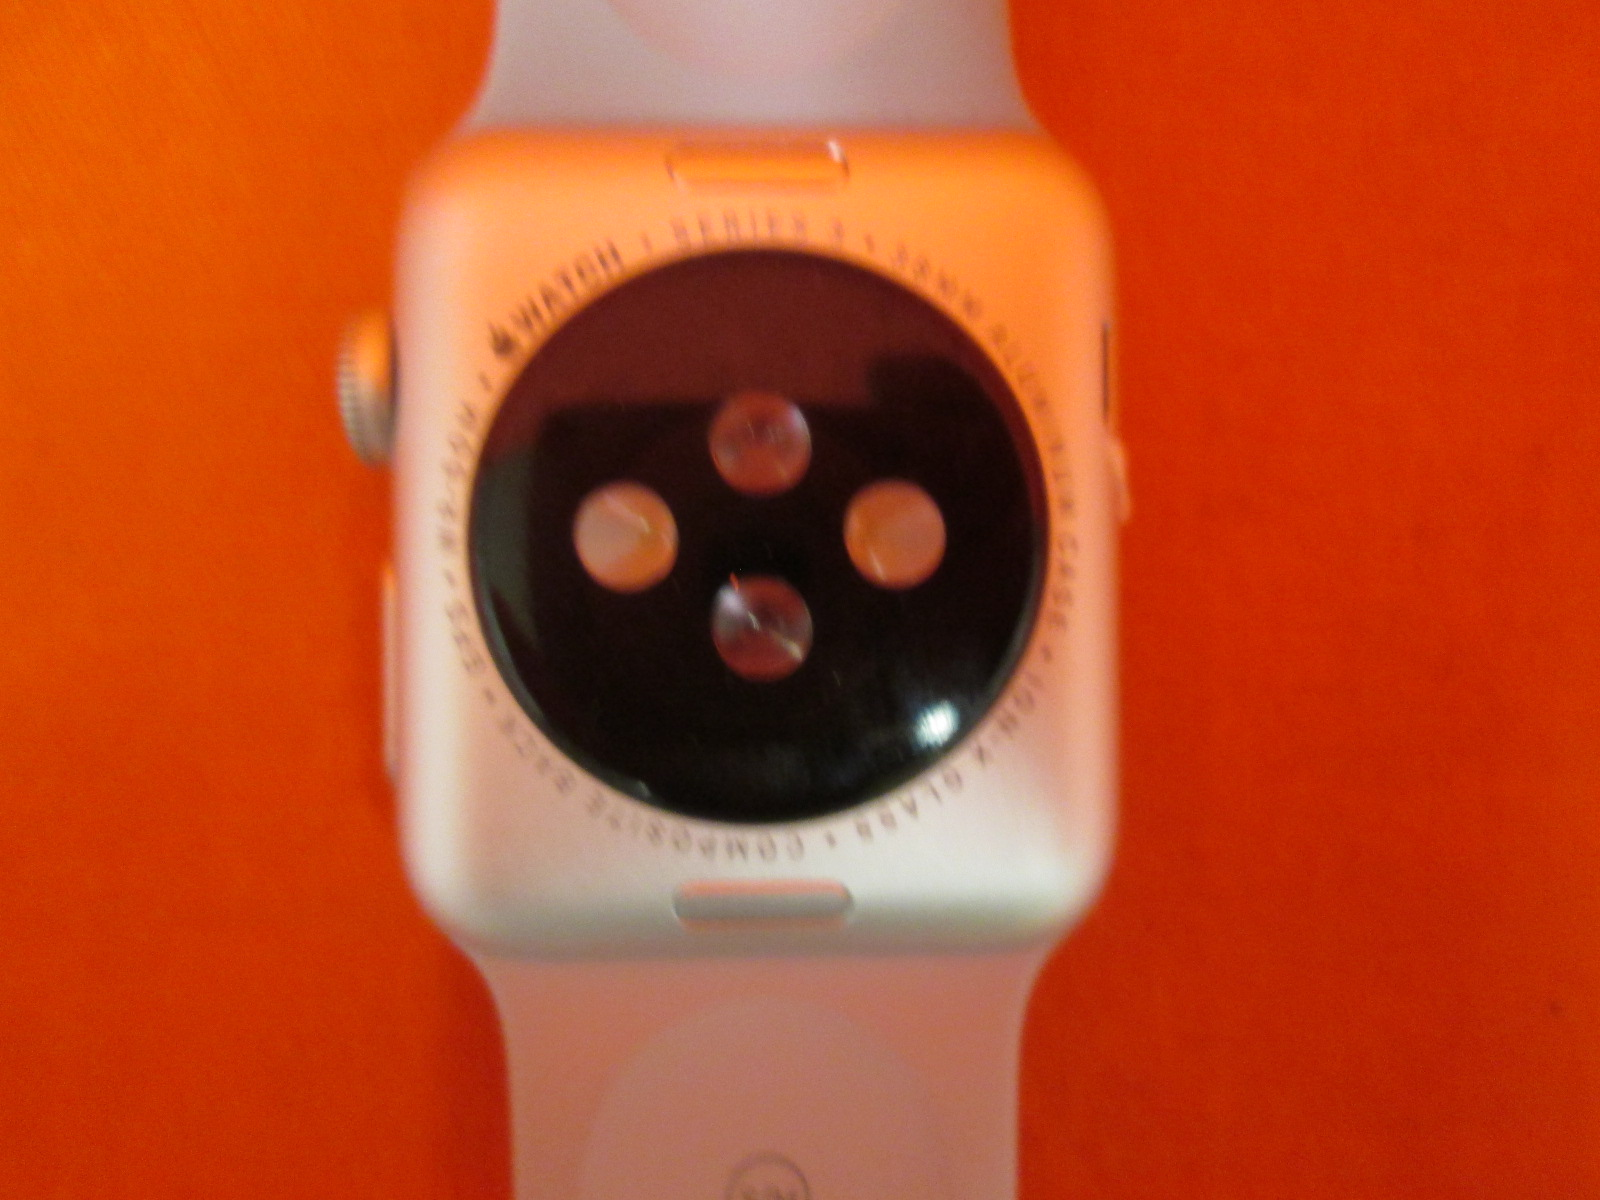 Image 1 of Apple Smart Watch 38MM Watch Series 3 Space Gray Aluminum Case With